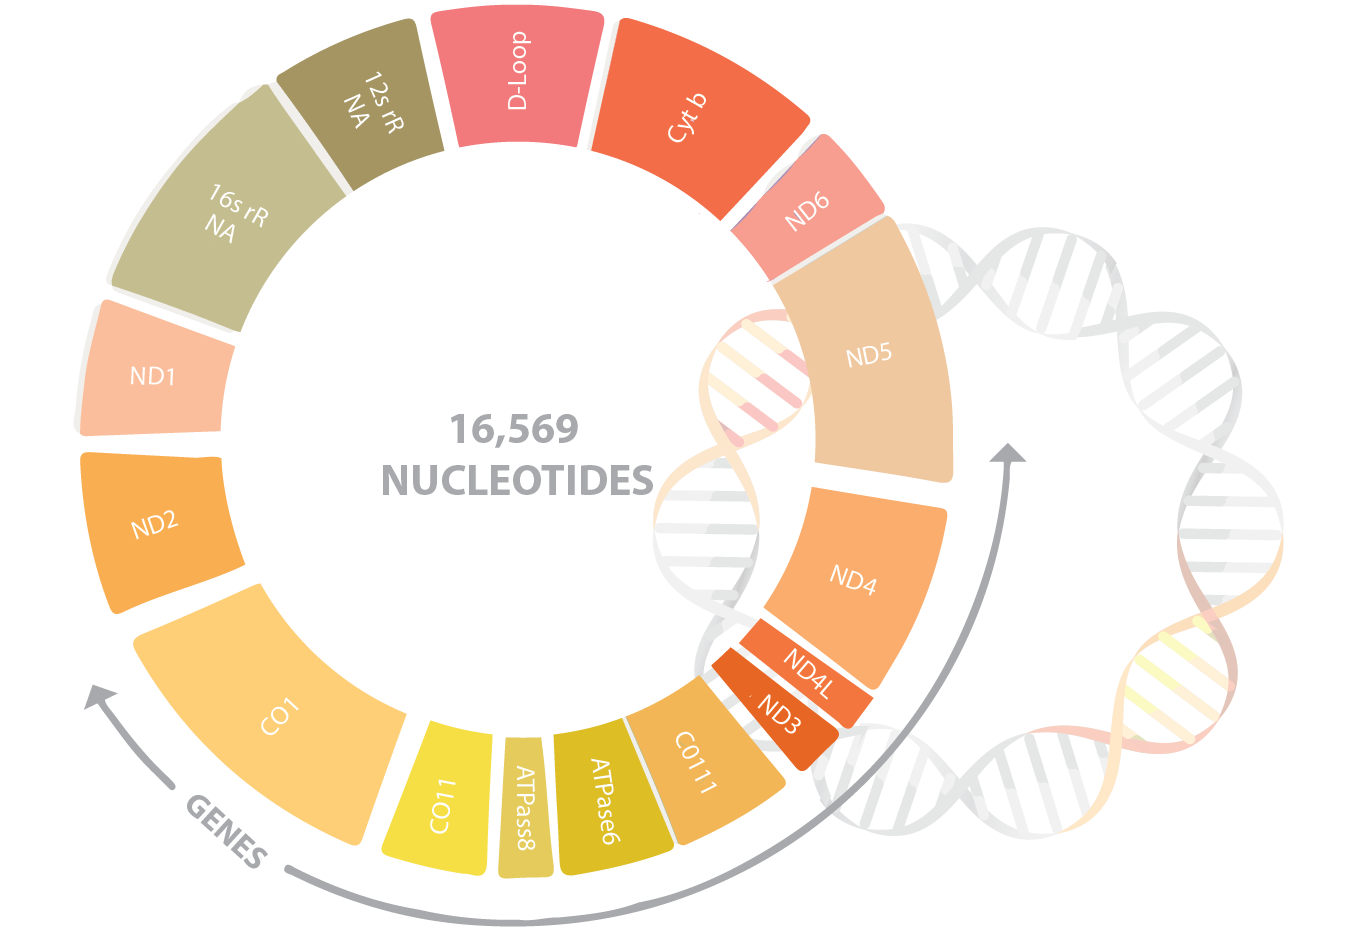 Dna clipart dna test. Mitochondrial sequencing